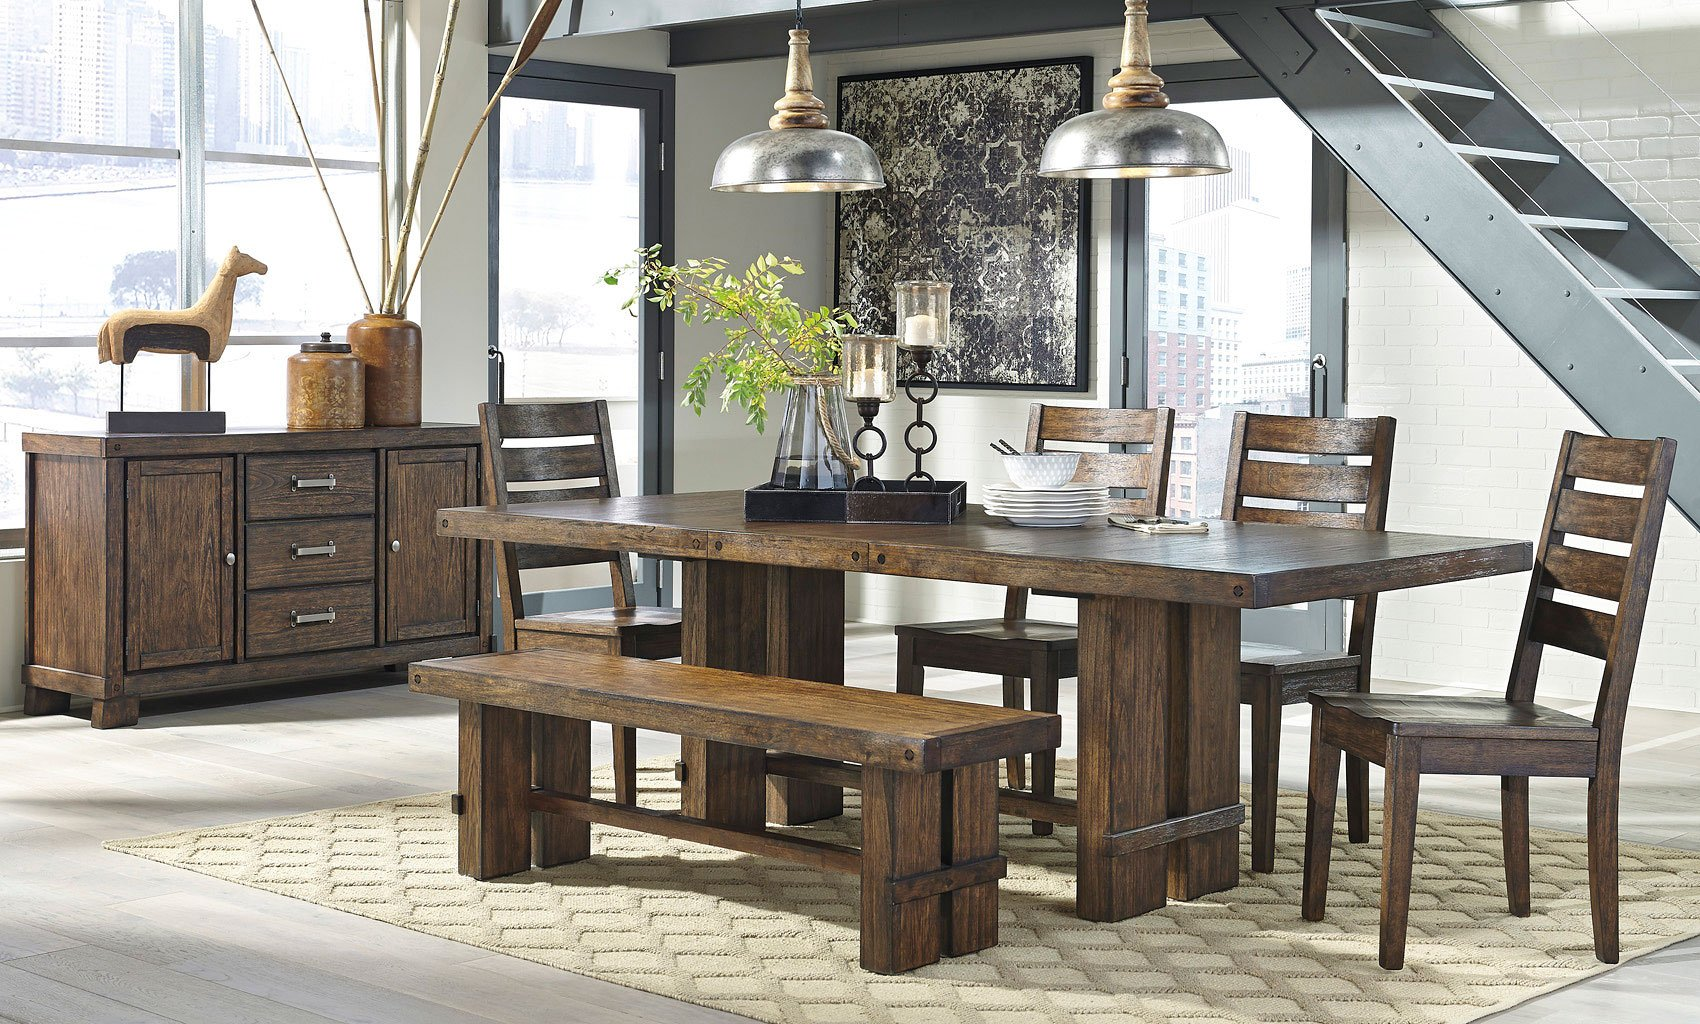 Superb img of Leystone Dining Room Set w/ Bench Formal Dining Sets Dining Room  with #76634A color and 1700x1024 pixels